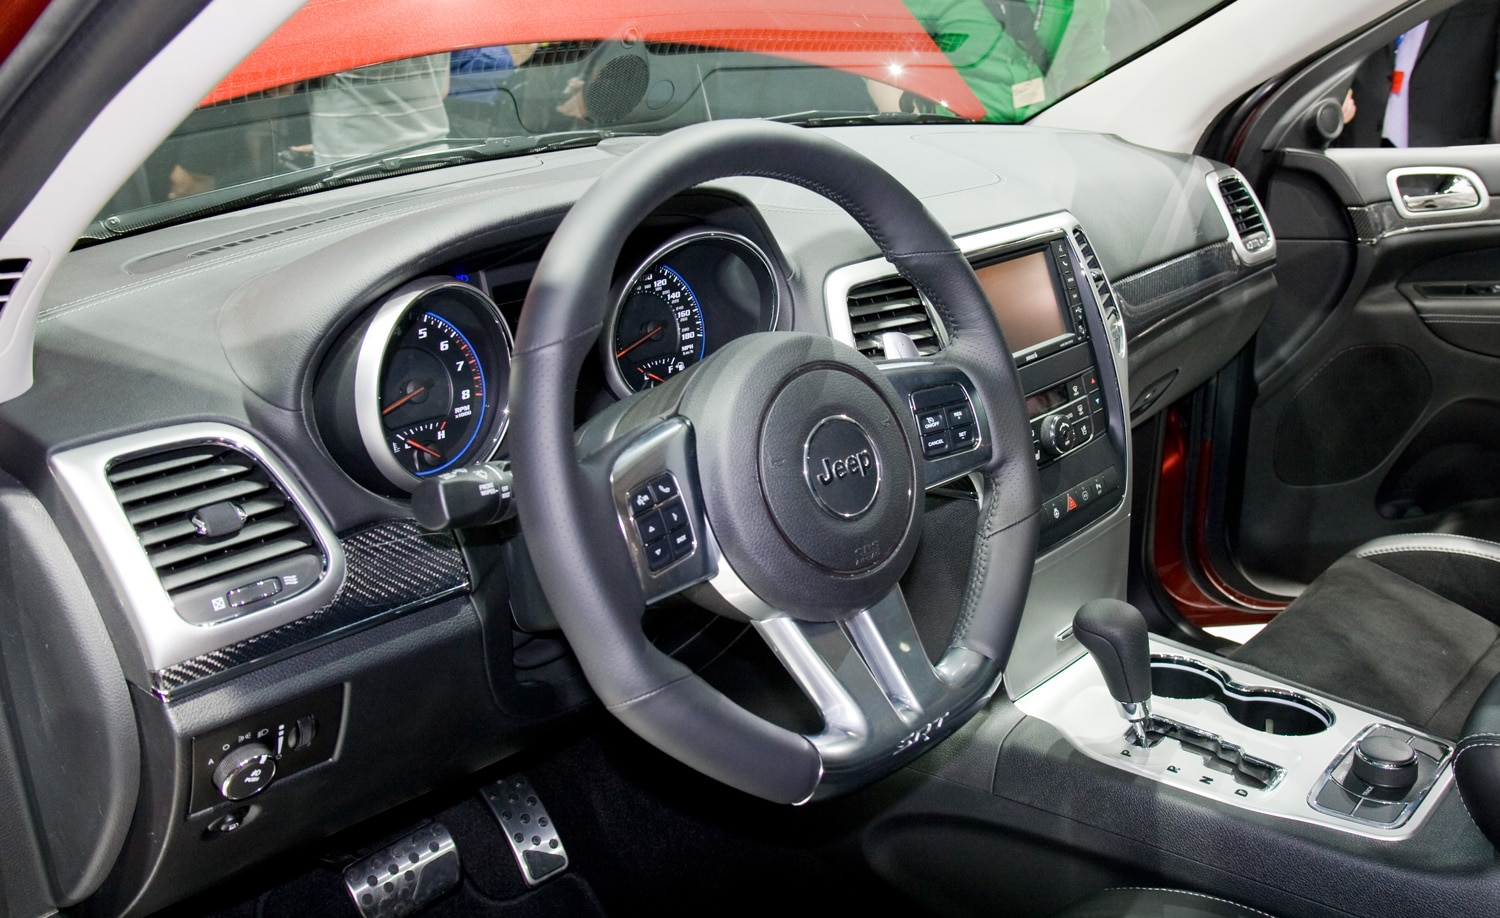 2012 Jeep Grand Cherokee Srt8 Interior View